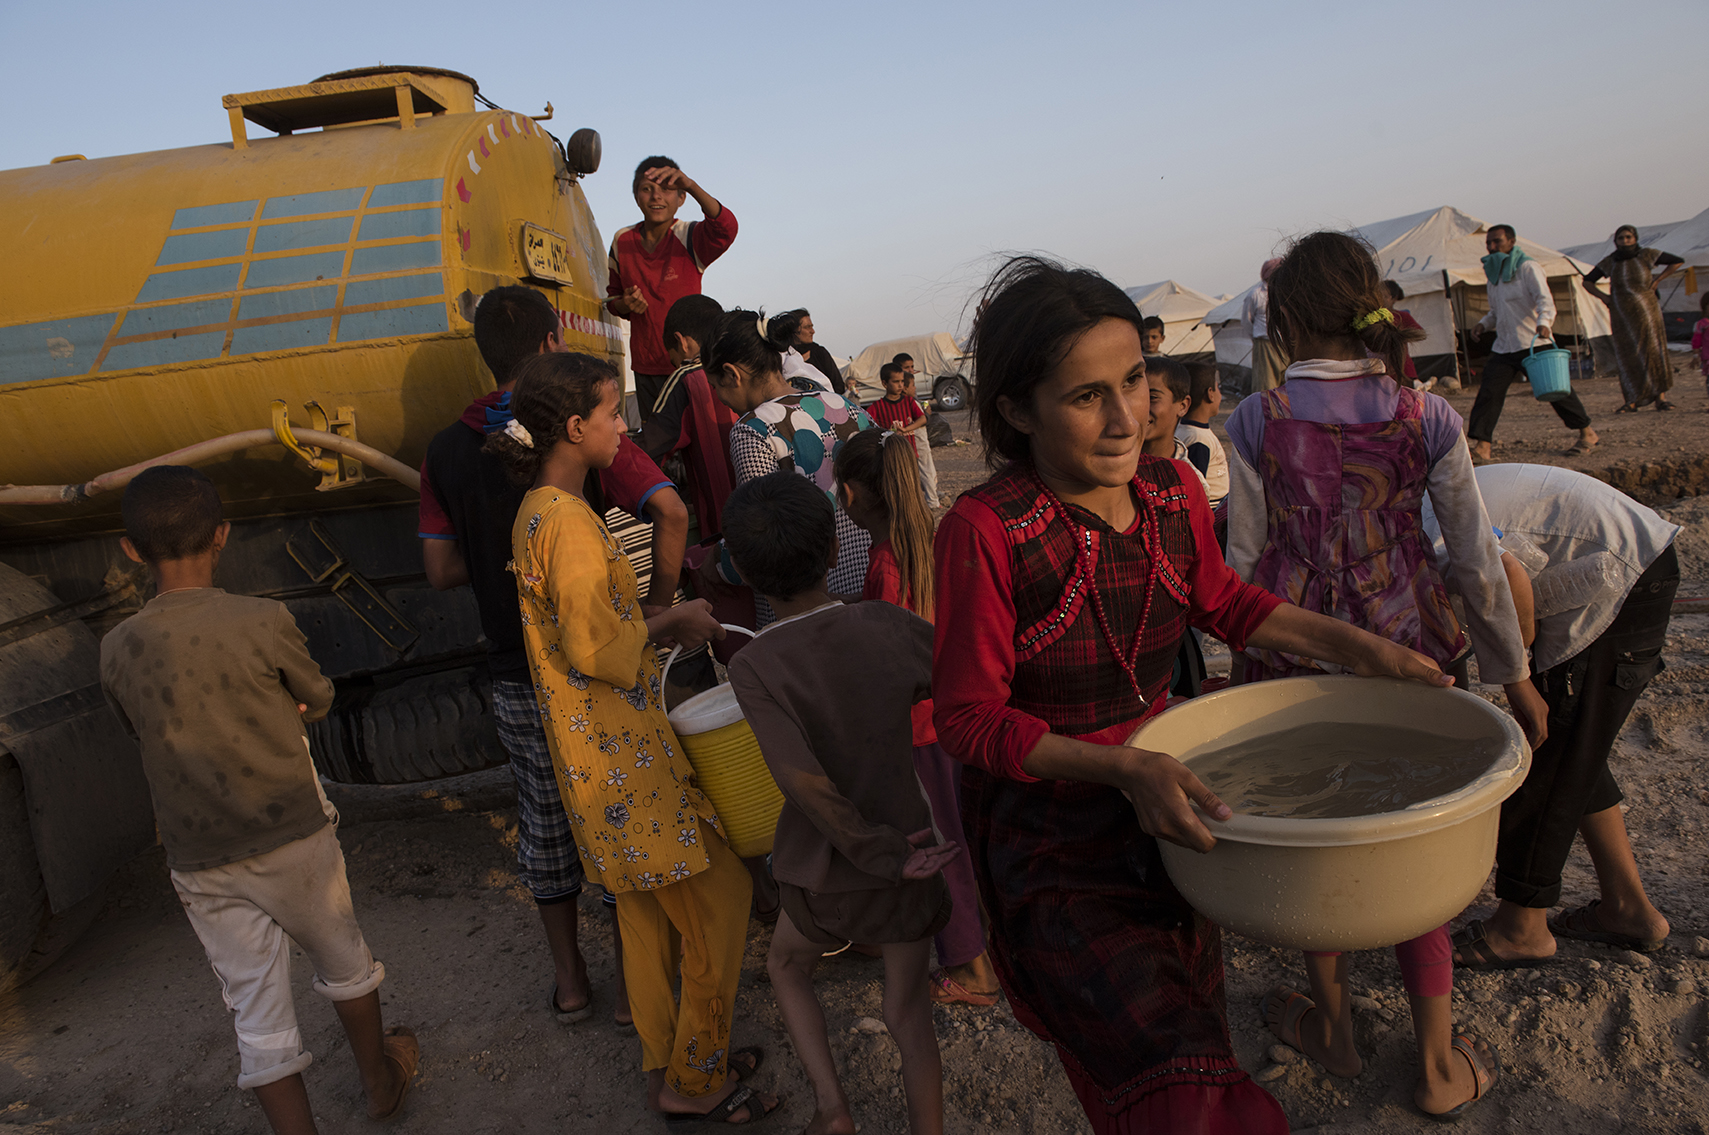 Iraqi Yazidi families fight to take water from a government water truck at the Bajid Kandal camp near the Iraqi border with Syria, in Northern Iraq, August 17, 2014. Since fighters with the Islamic State started making its way across Iraq, and overrunning various towns, hundreds of thousands of Iraqis have been displaced across the country. The American military is helping fight IS with targeted airstrikes on IS positions, and Peshmerga are fighting on the ground.